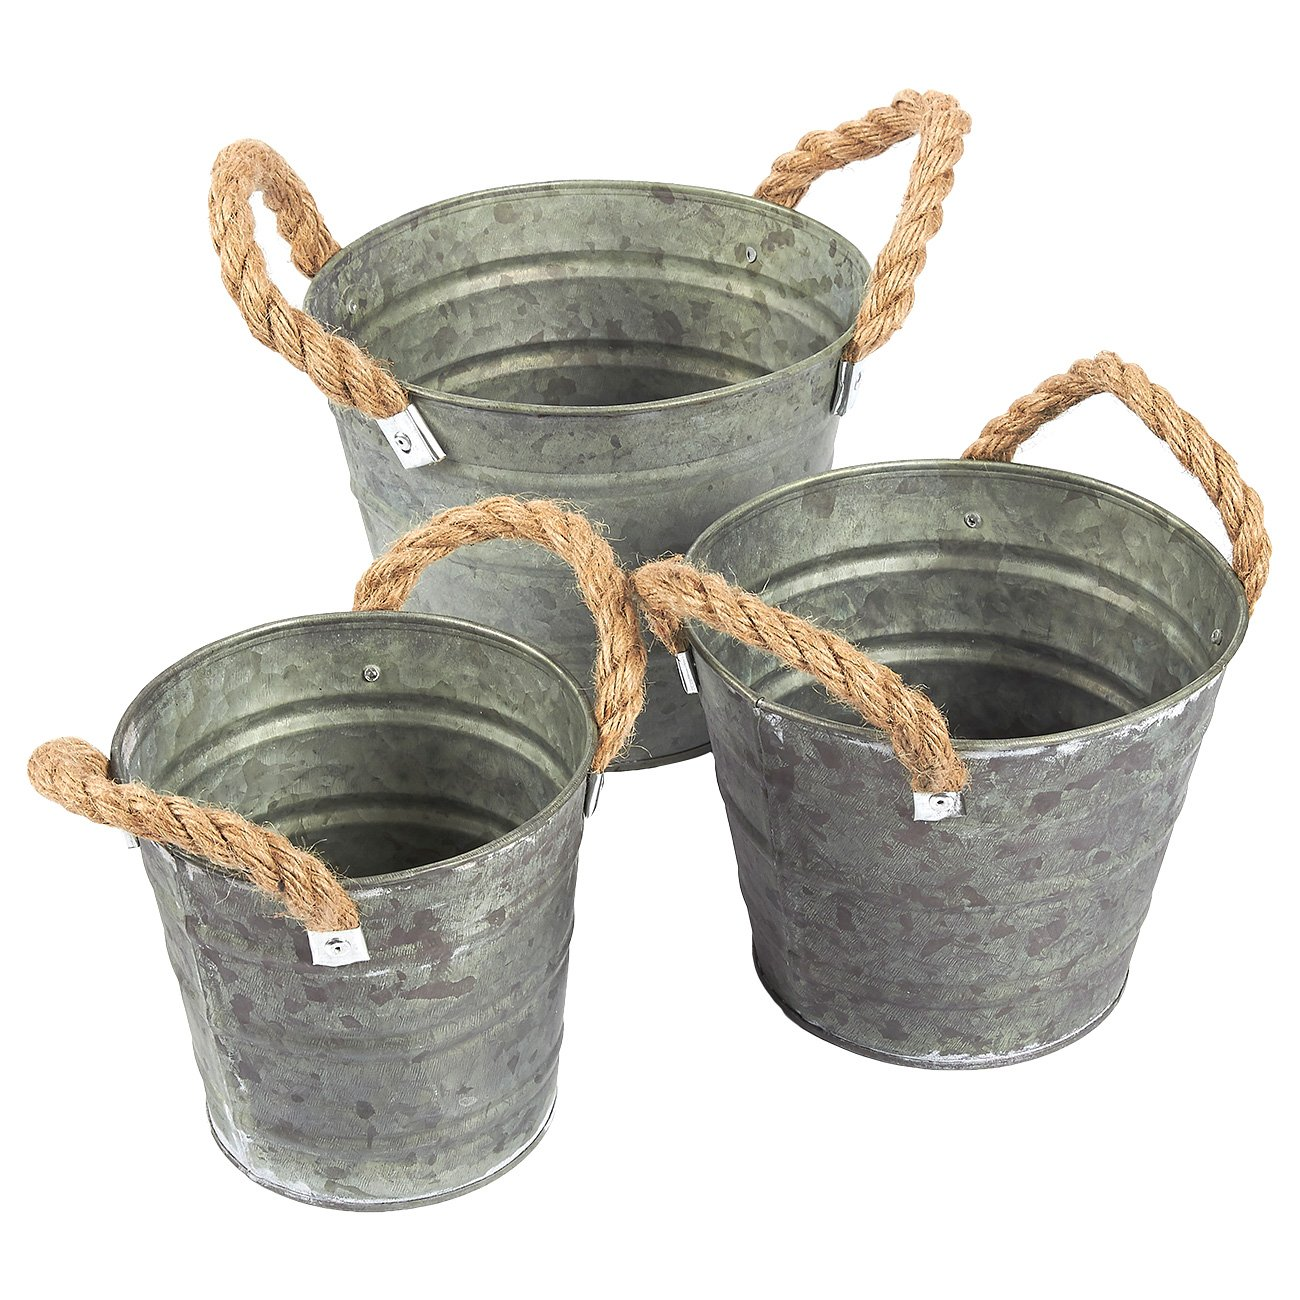 3-Set Vintage Galvanized Planter Buckets - Garden Bucket with Rope Handles, Galvanized Metal Pail, Ideal for Planting, Decoration, Storage, Gray, 3 Sizes.